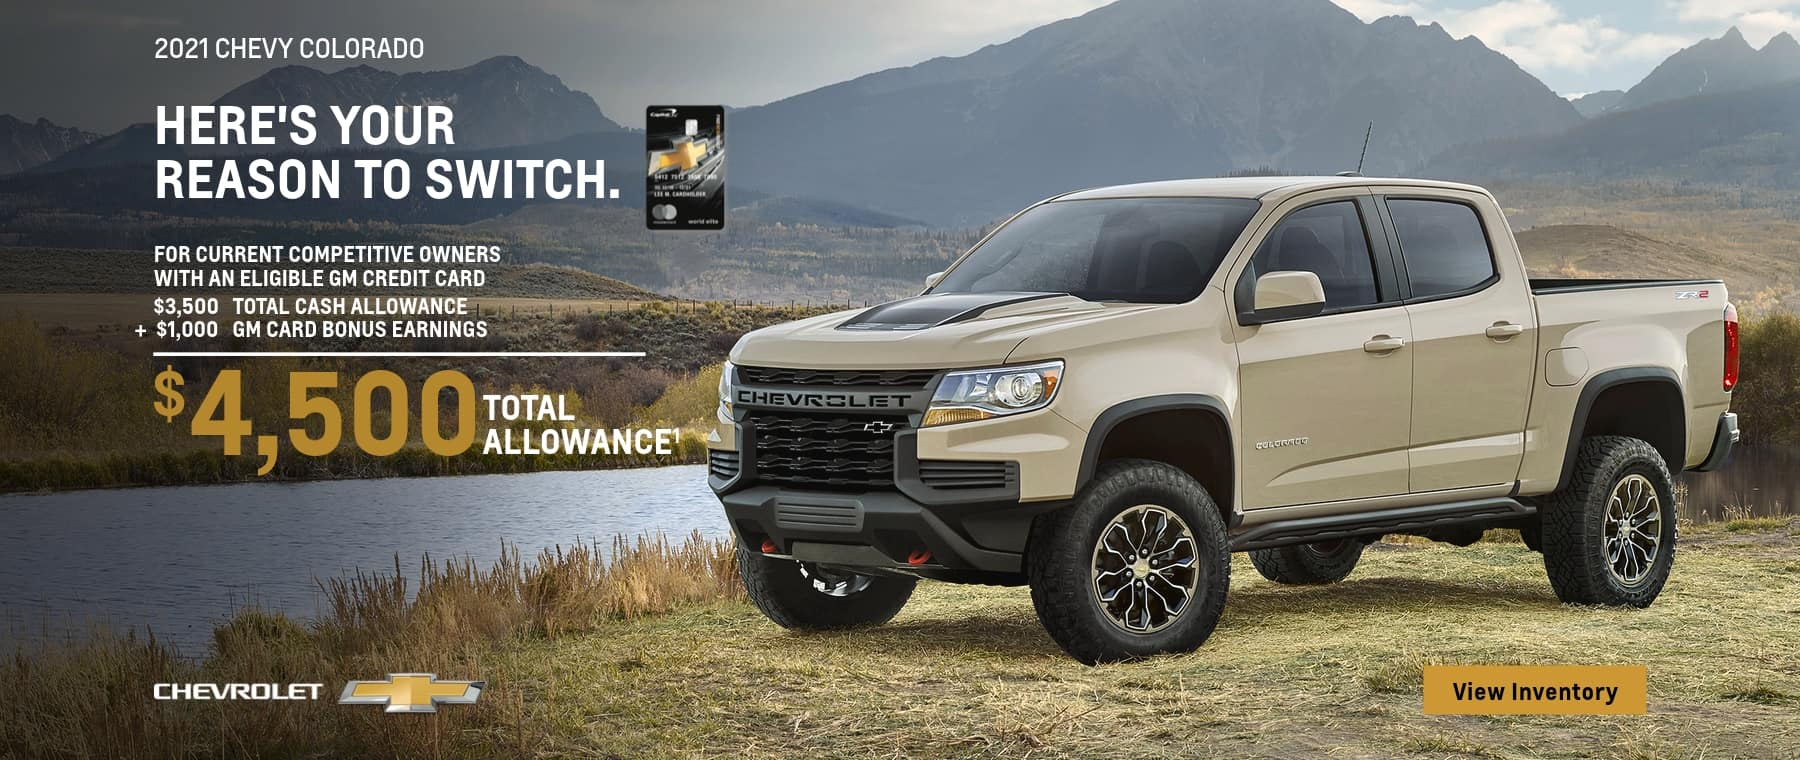 2021 chevy colorado for current competitive owners with an eligible gm credit card $3,500 total cash allowance + $1,000 gm card bonus earnings srtviselgt lee chevrolet $4,500 total allowance1 view inventory